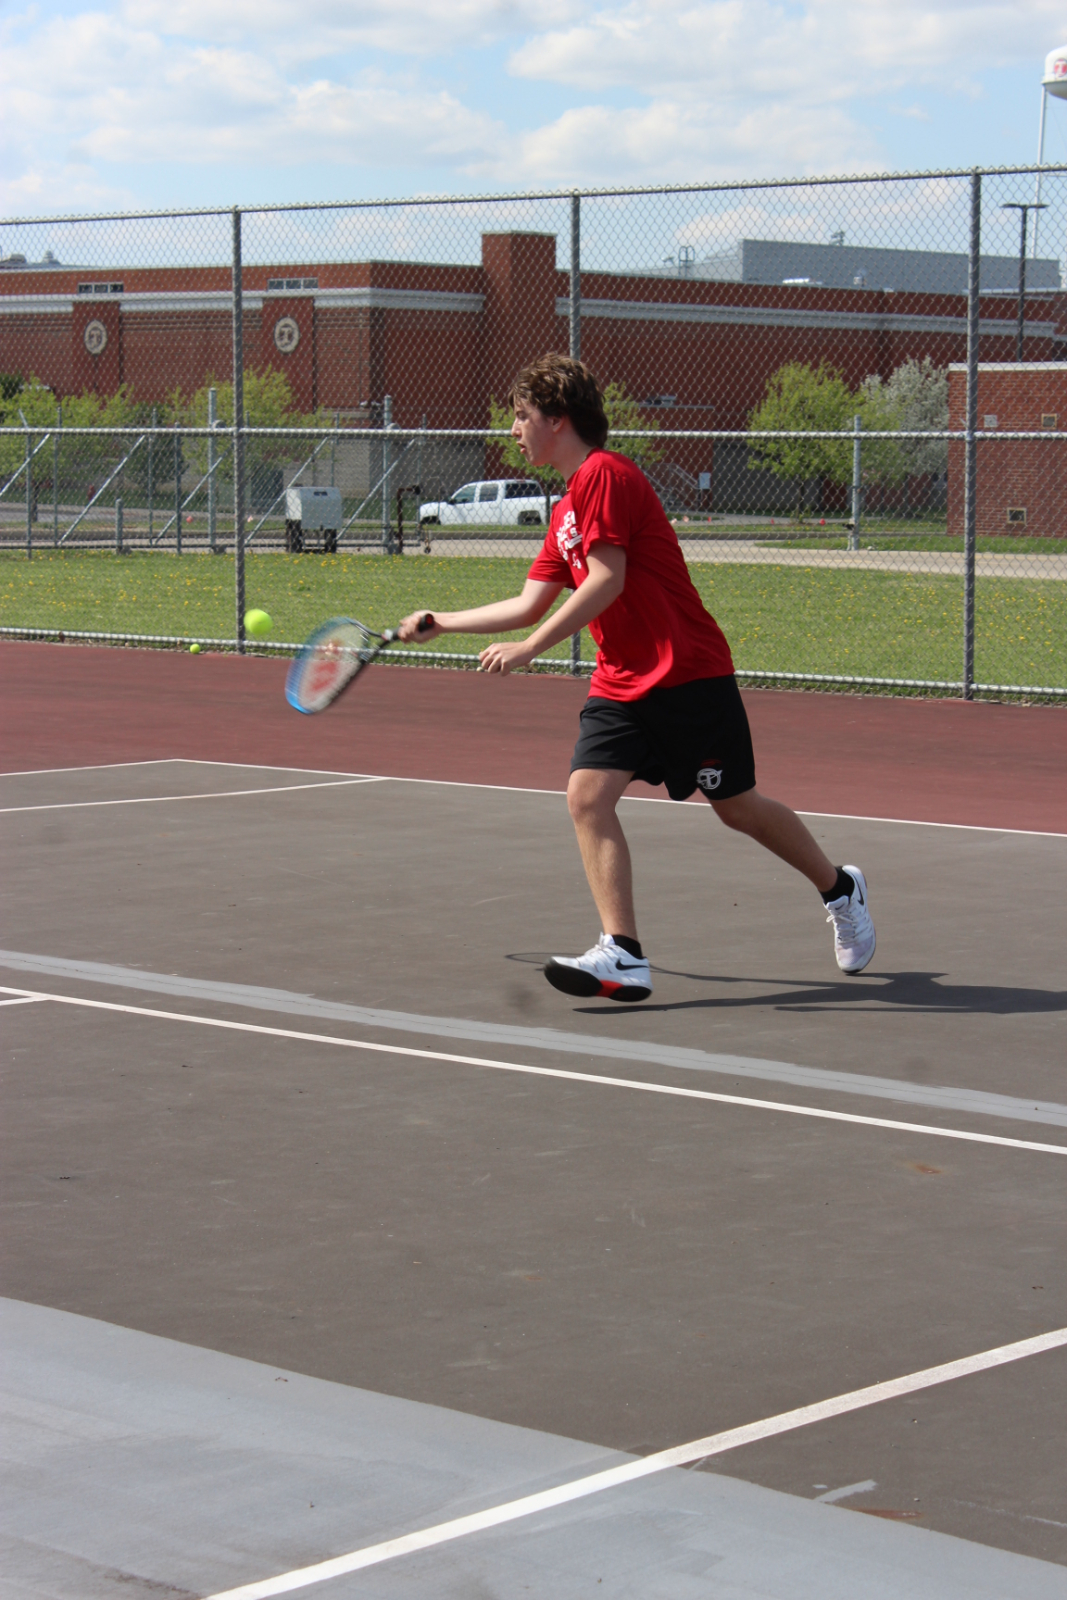 Tennis Photos from April 14th